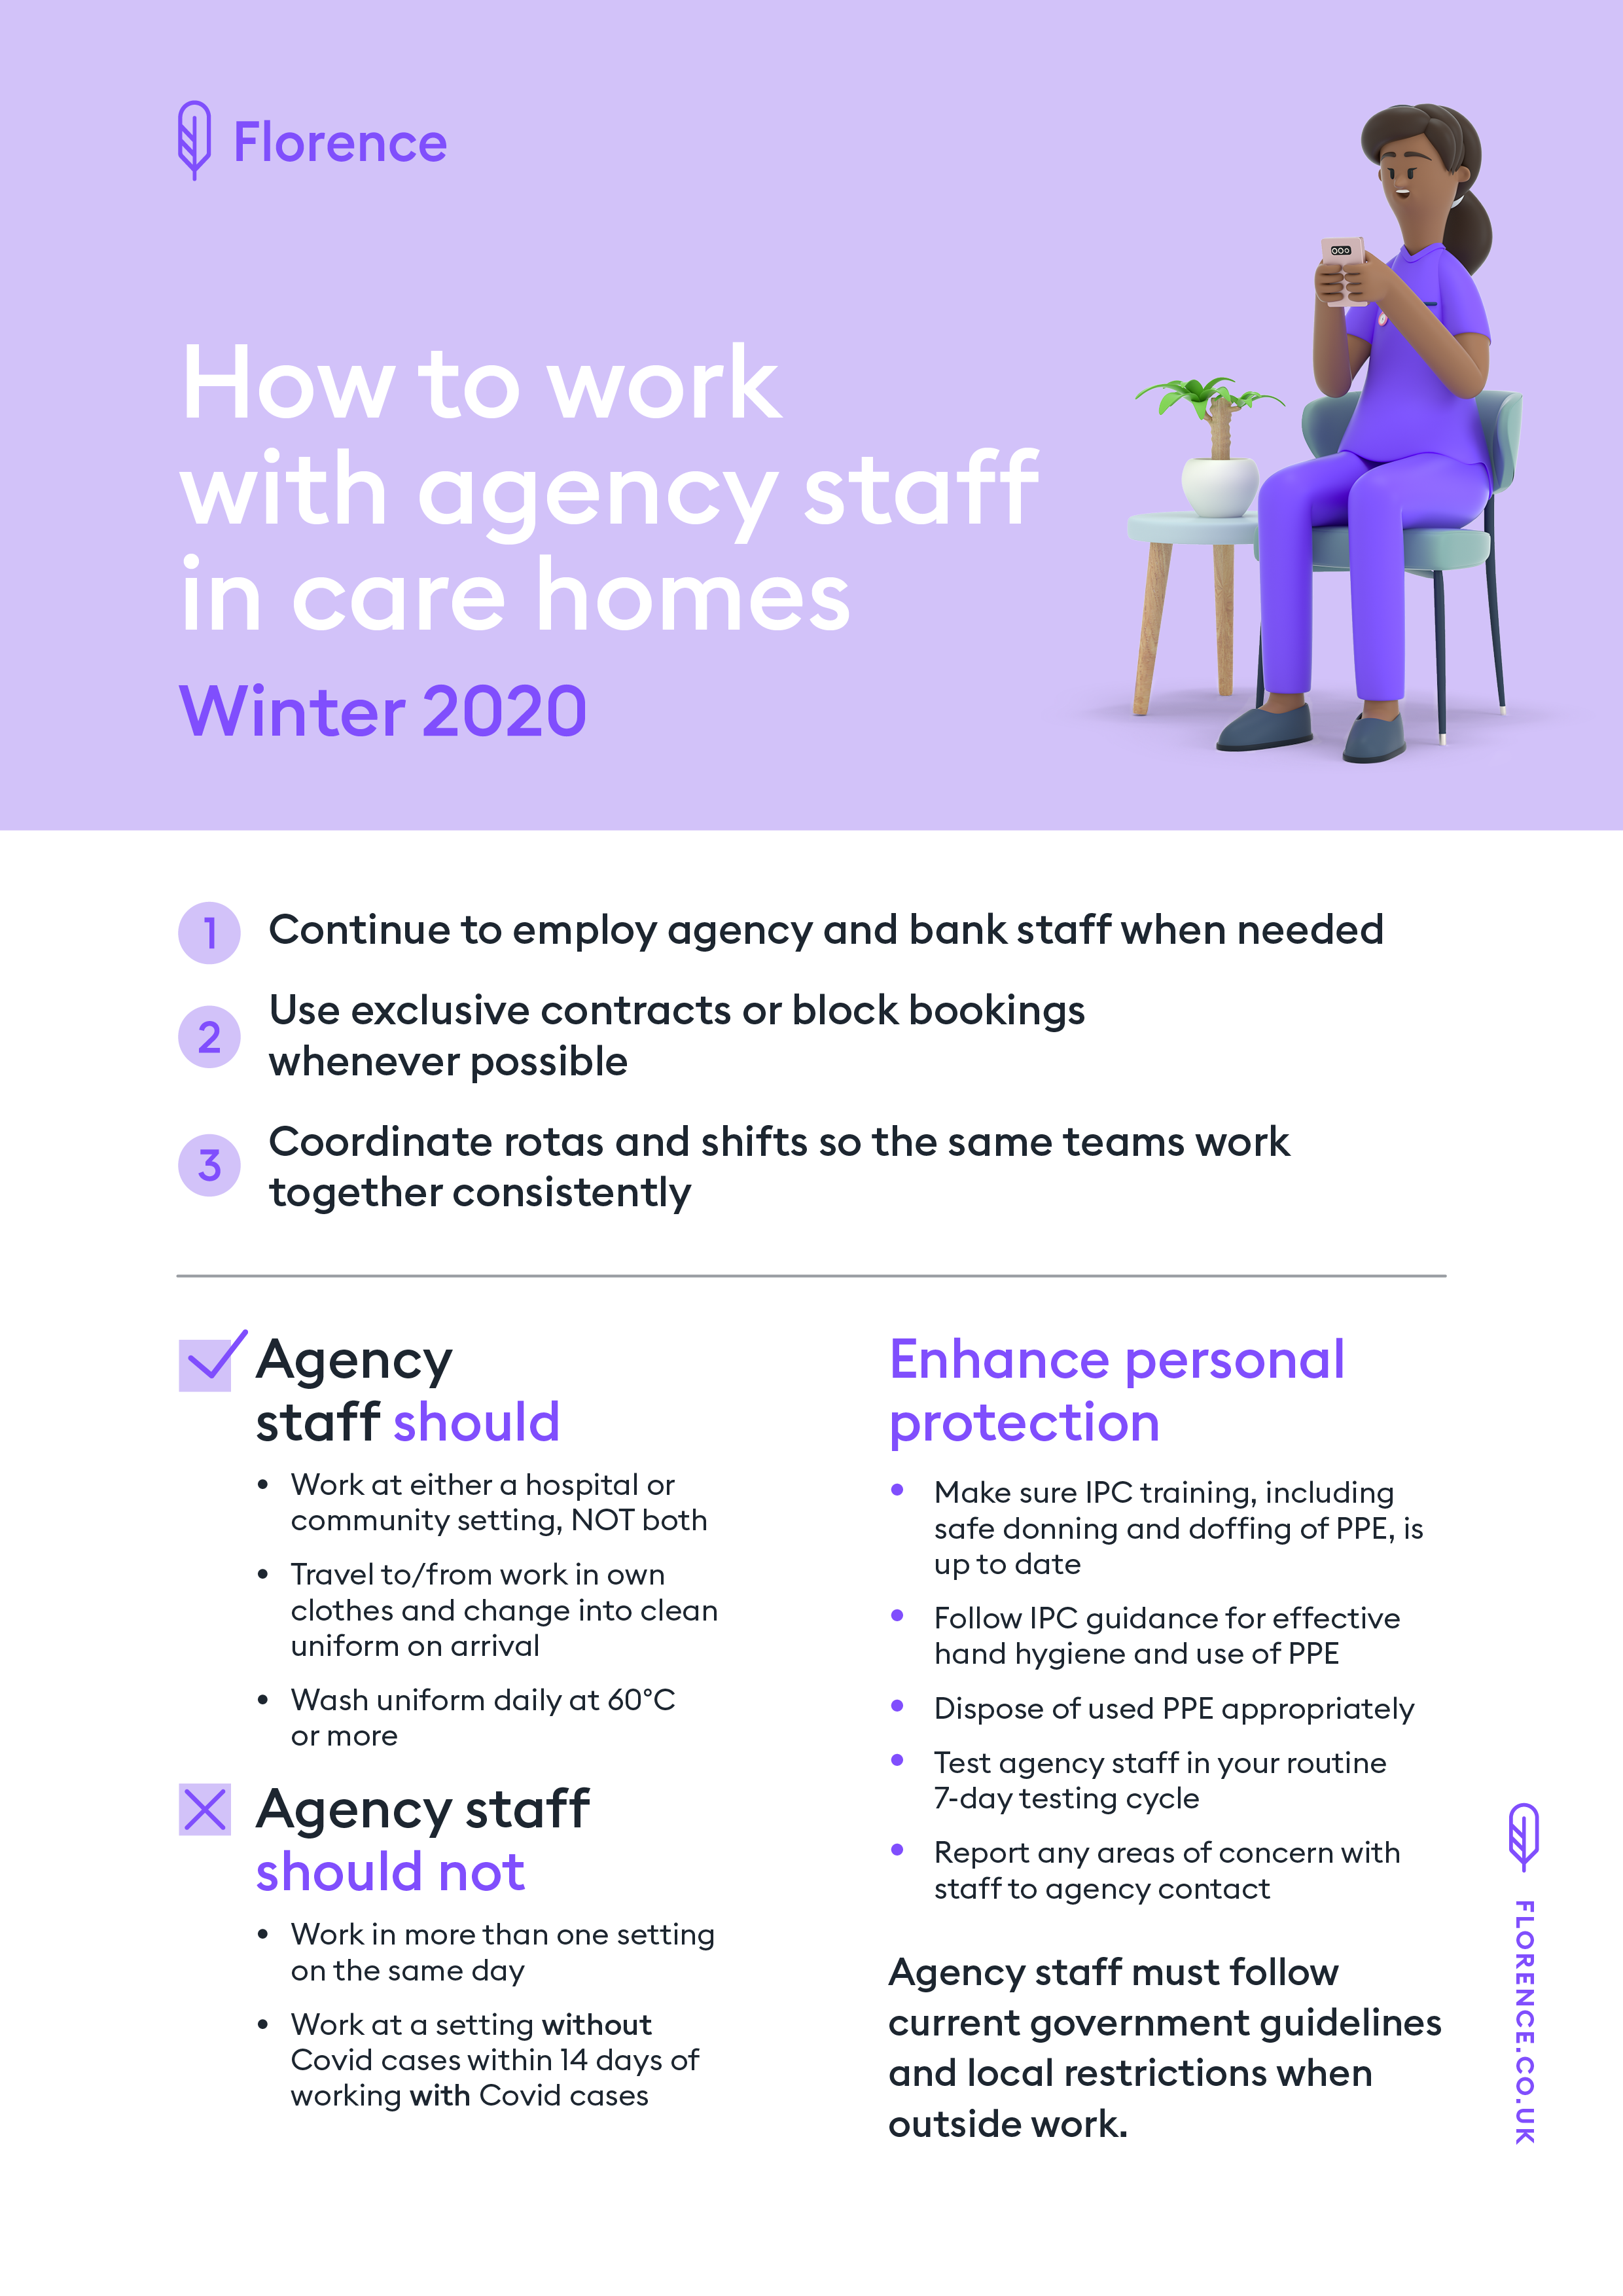 How to work with agency staff winter 2020